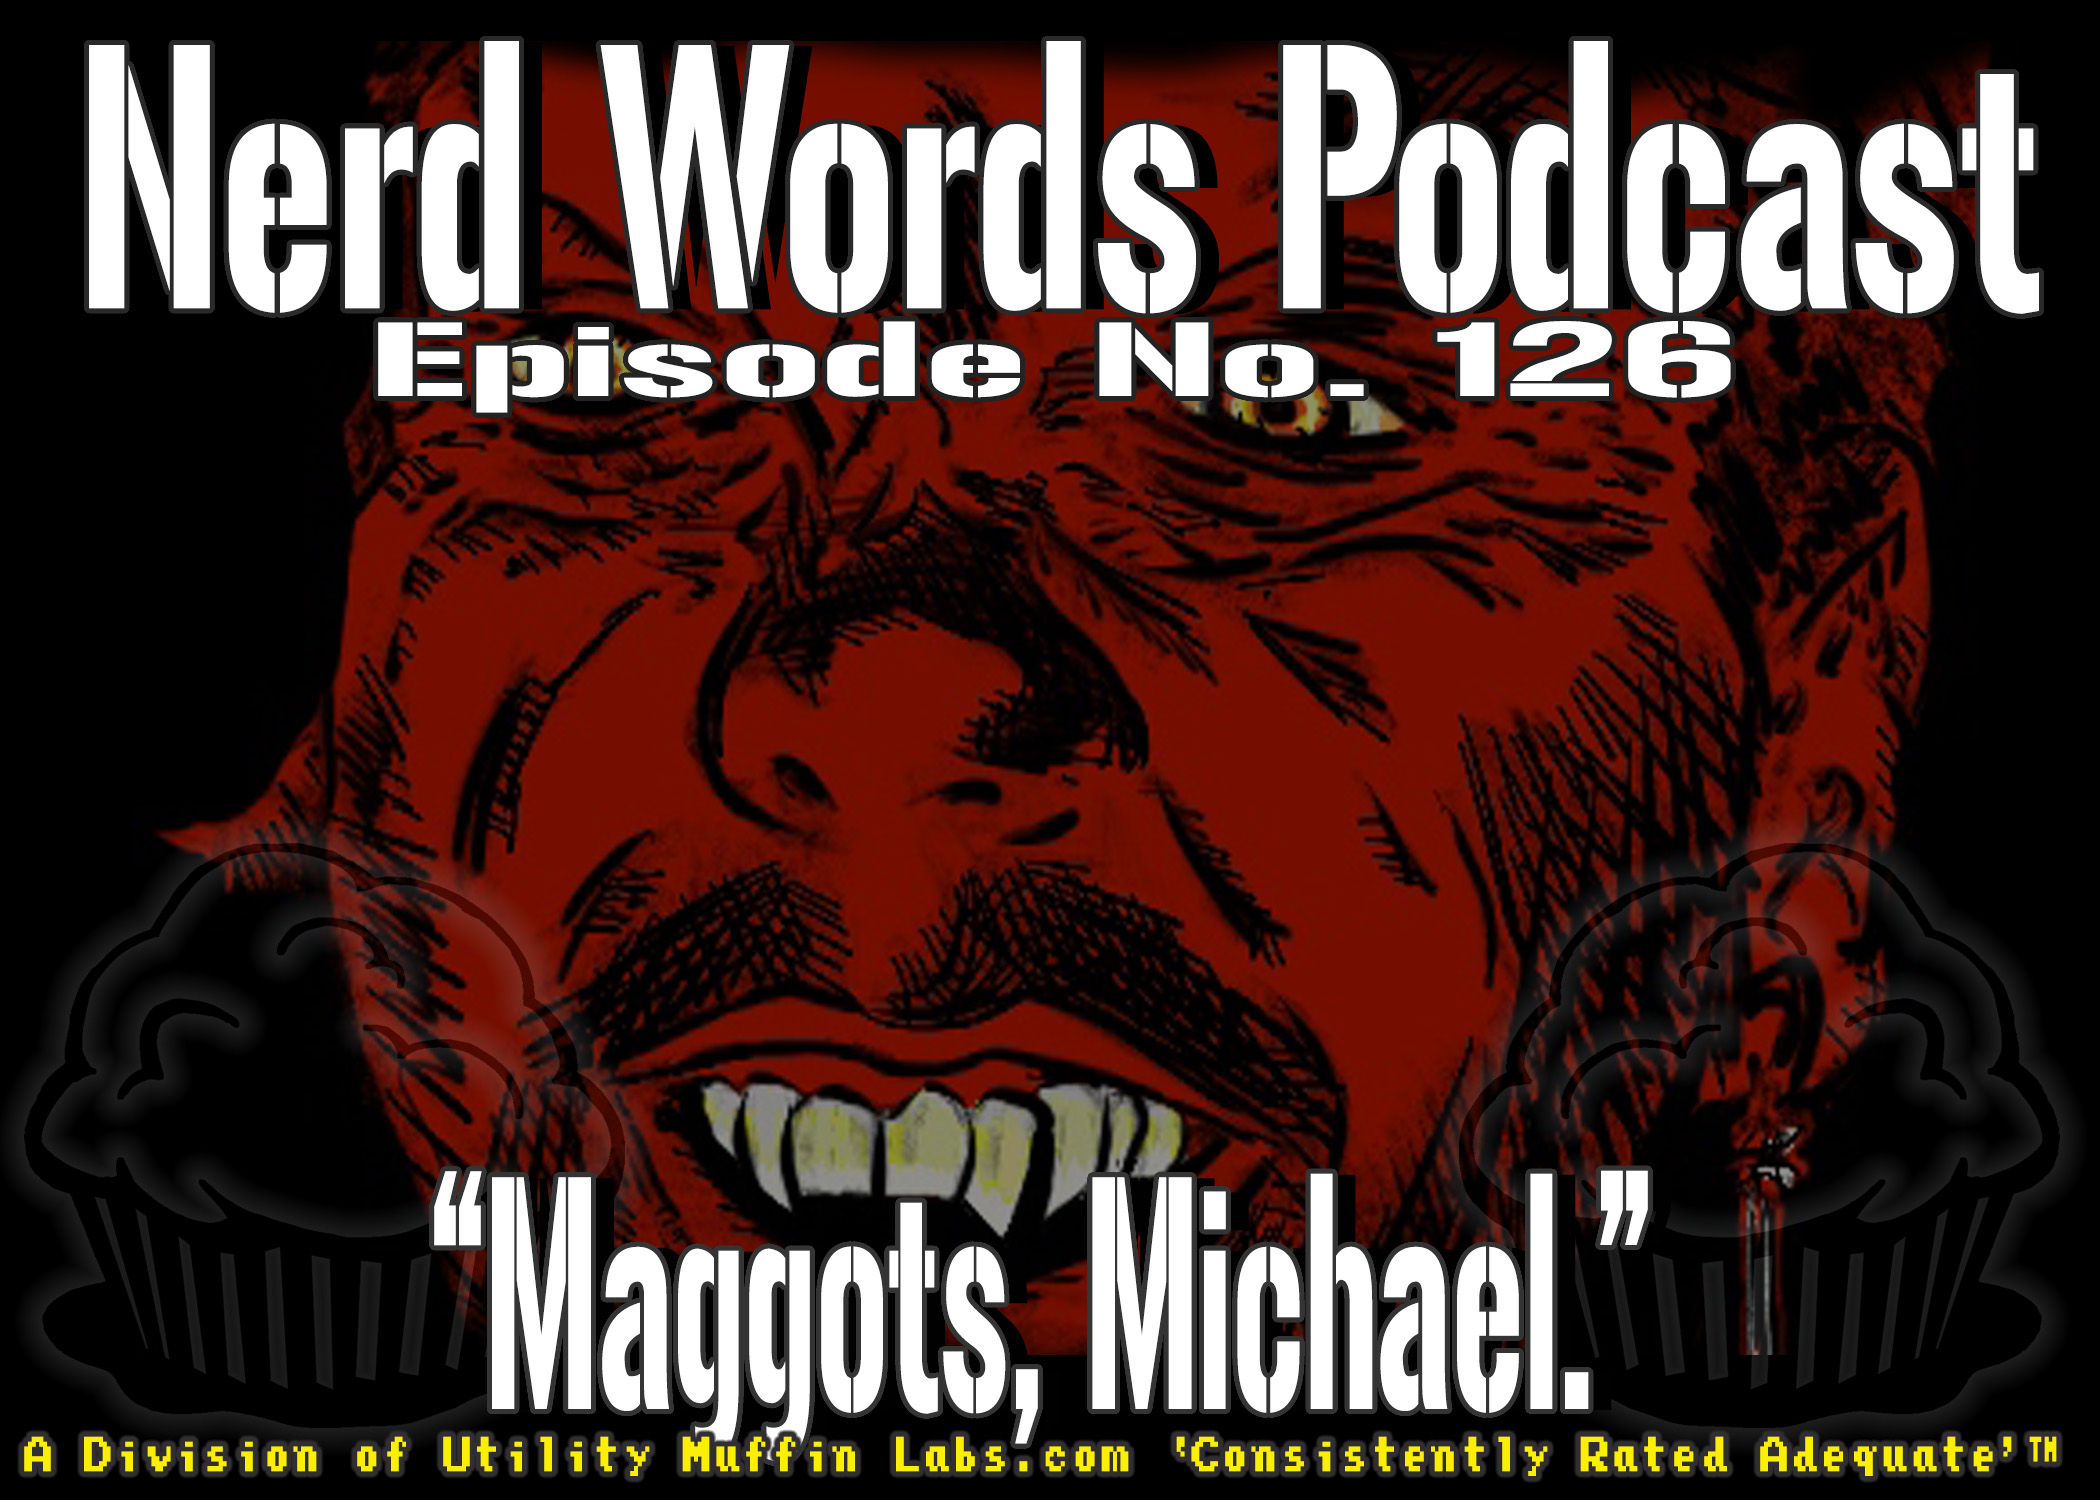 Nerd Words Podcast 126.jpg